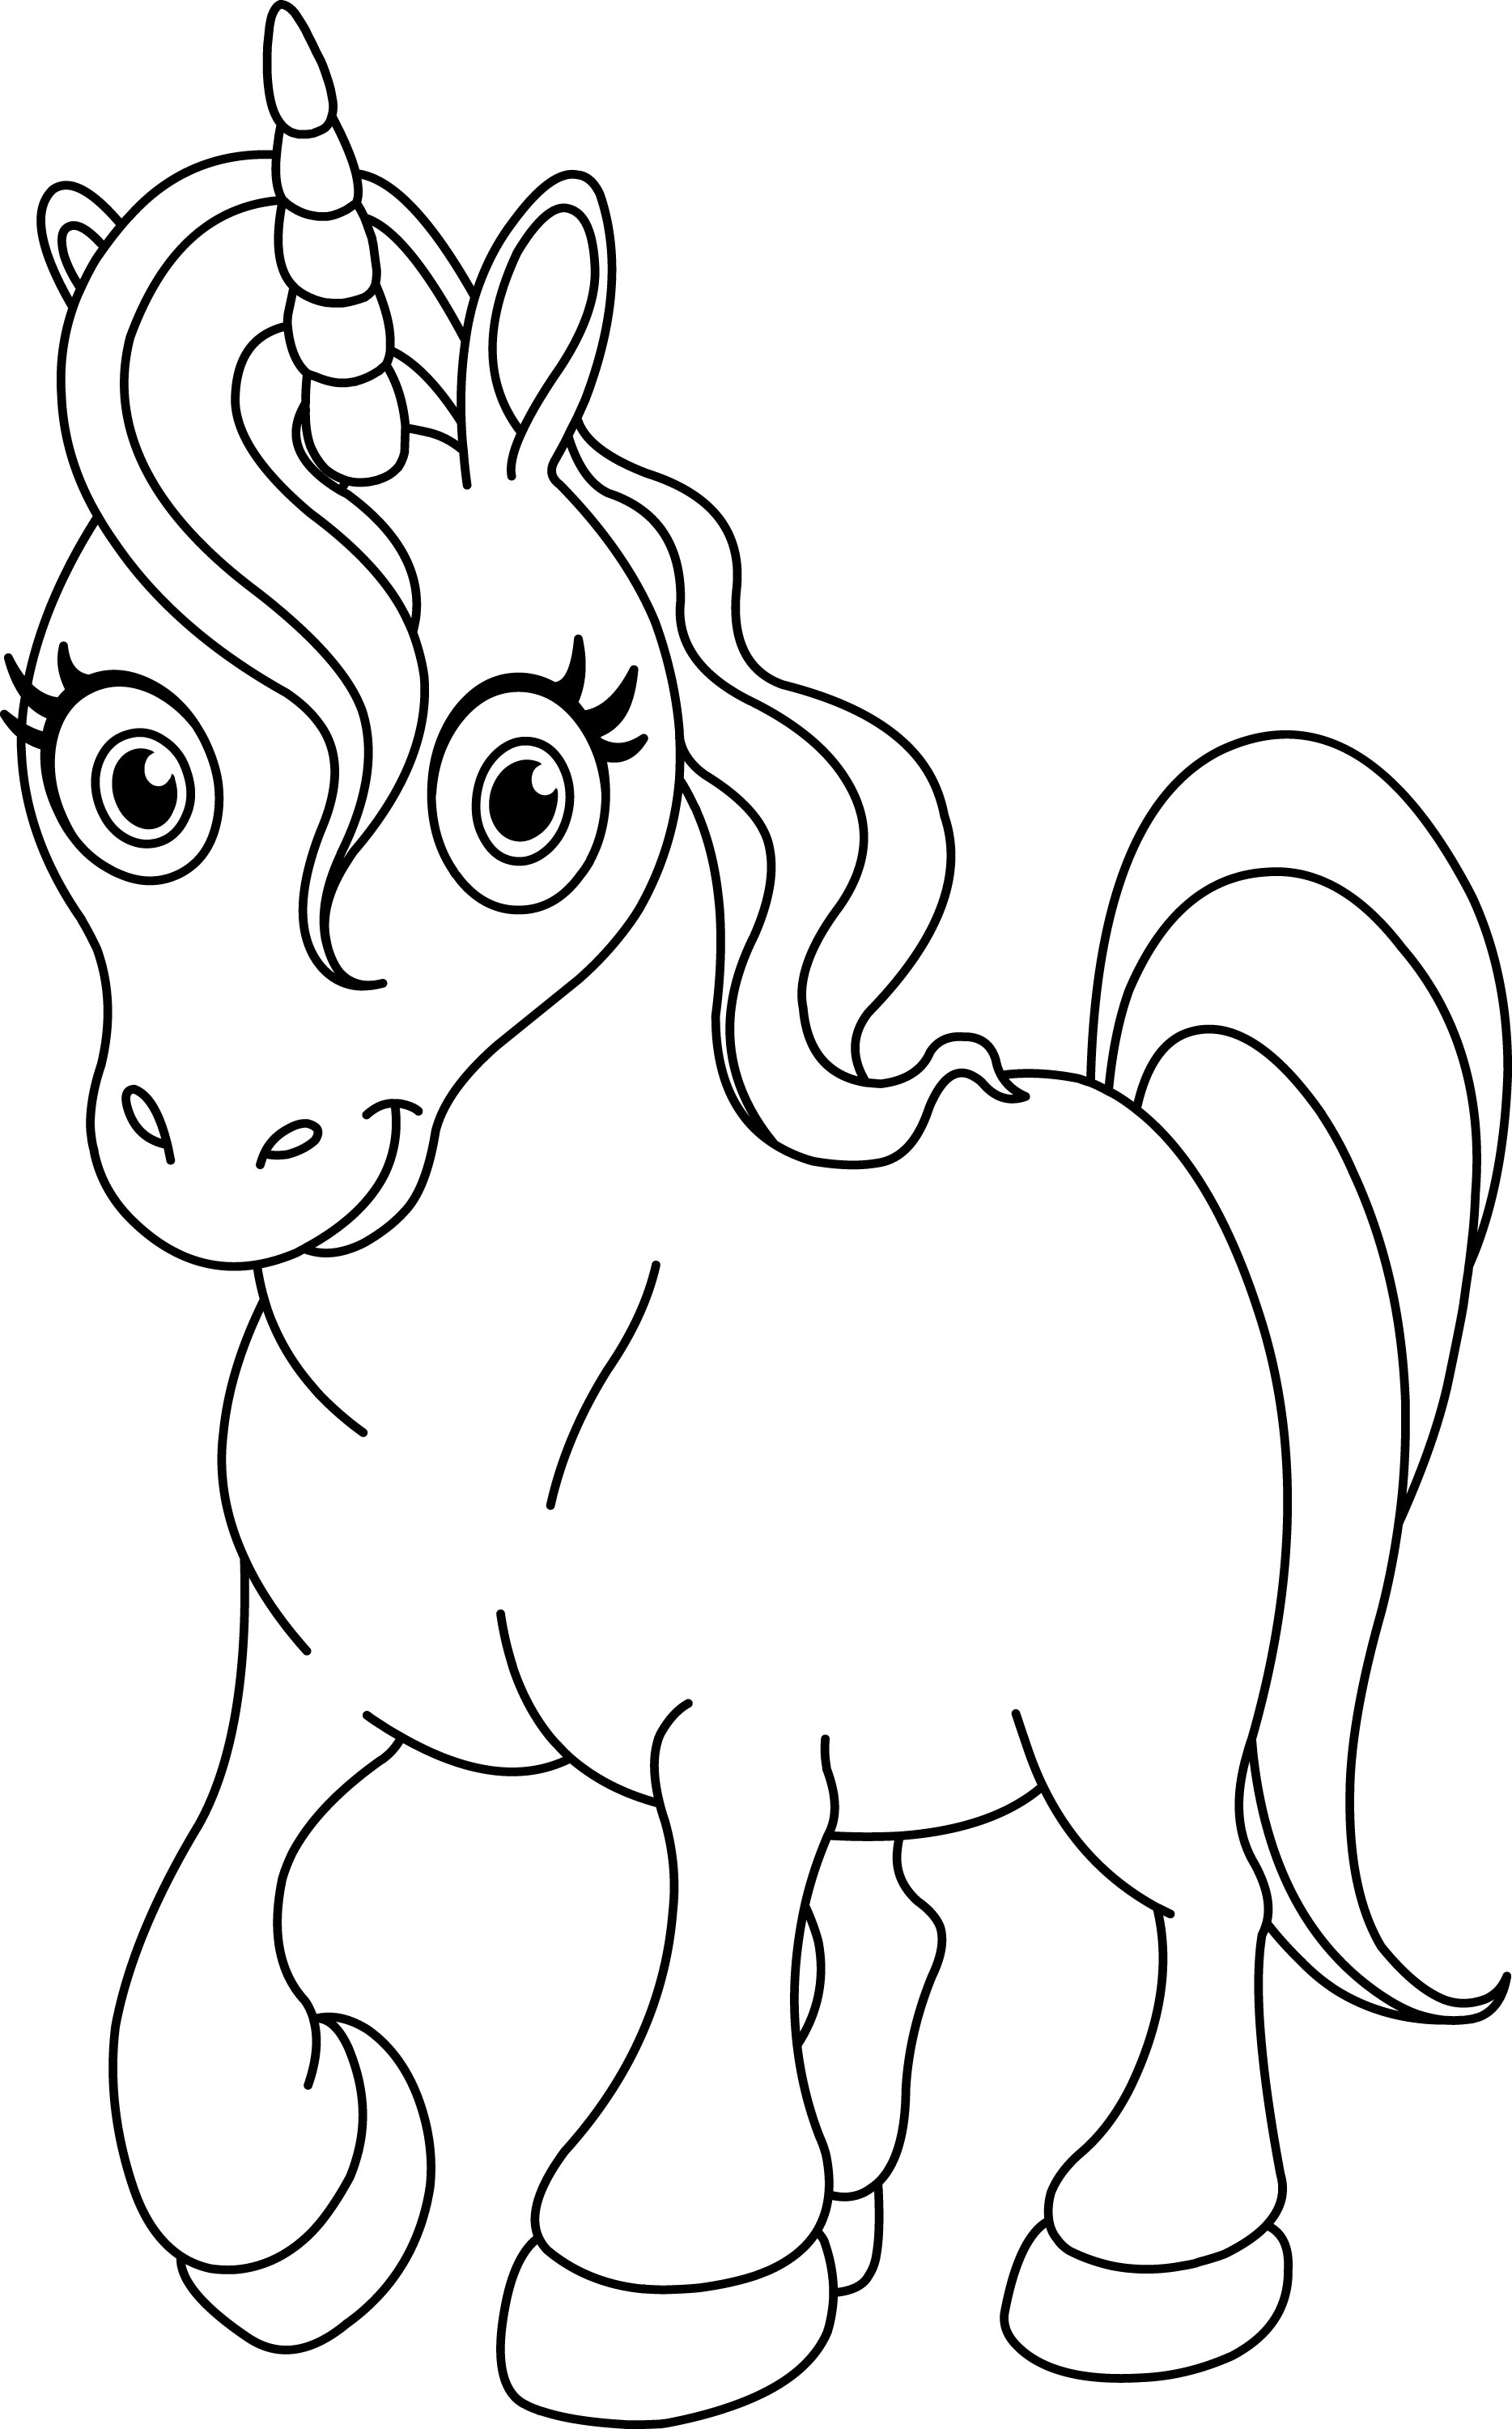 It's just a picture of Lucrative Unicorn Coloring Pages Free Printable